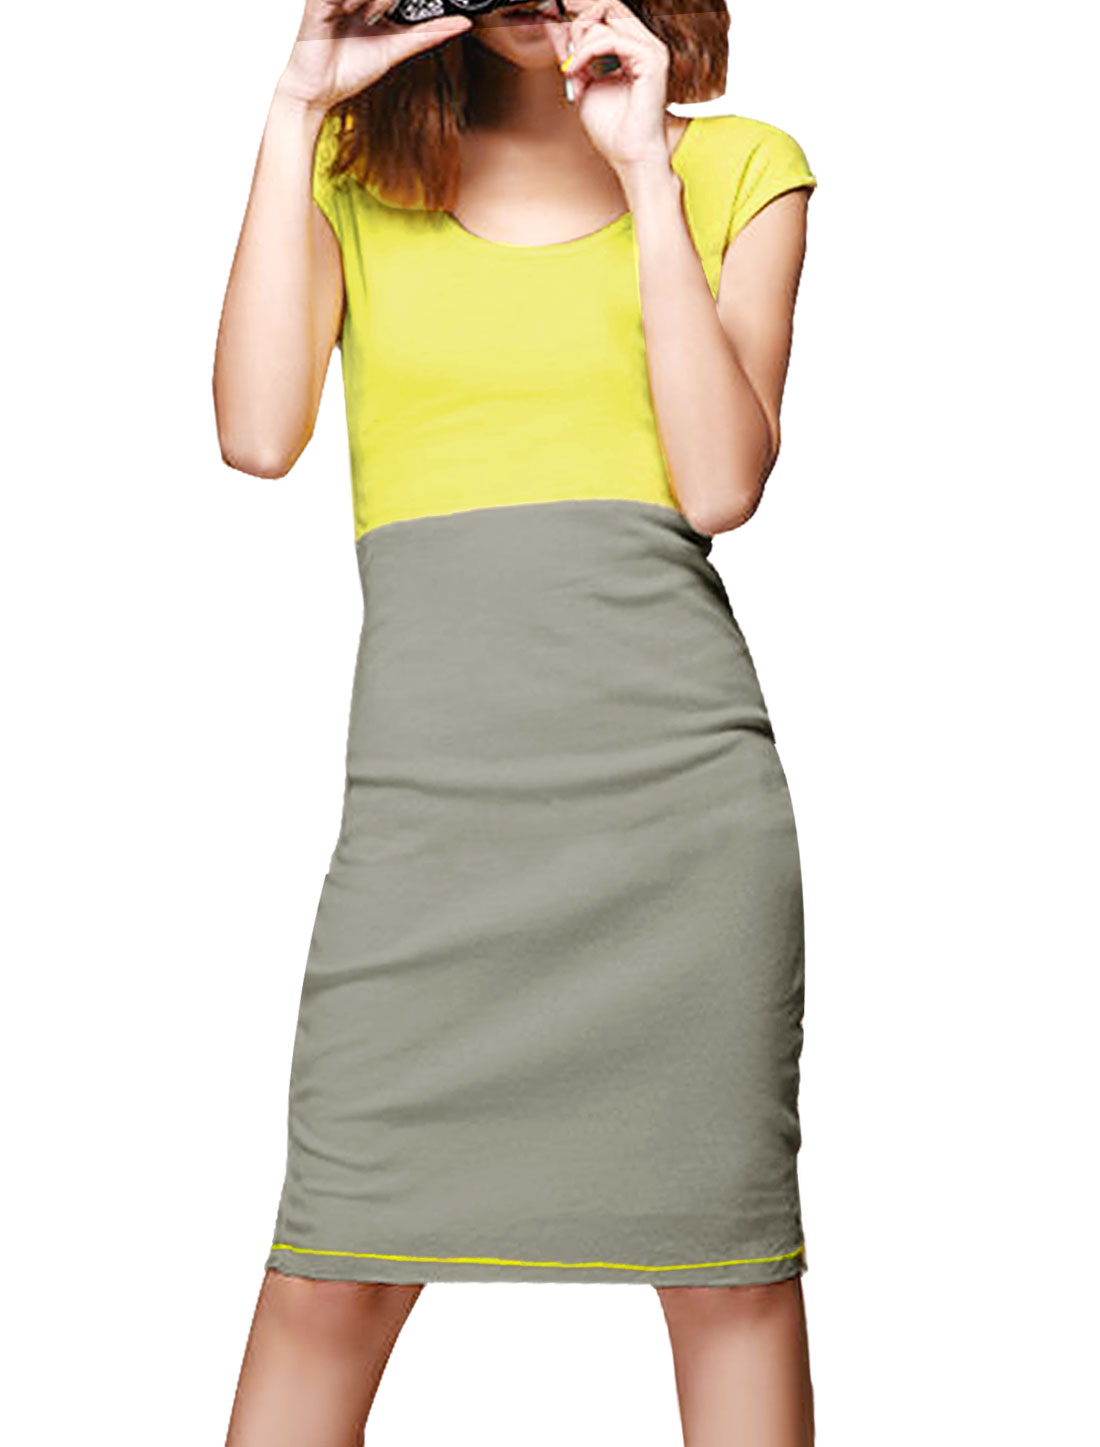 Pullover Color Blocking Yellow Light Gray Casual Dress M for Lady